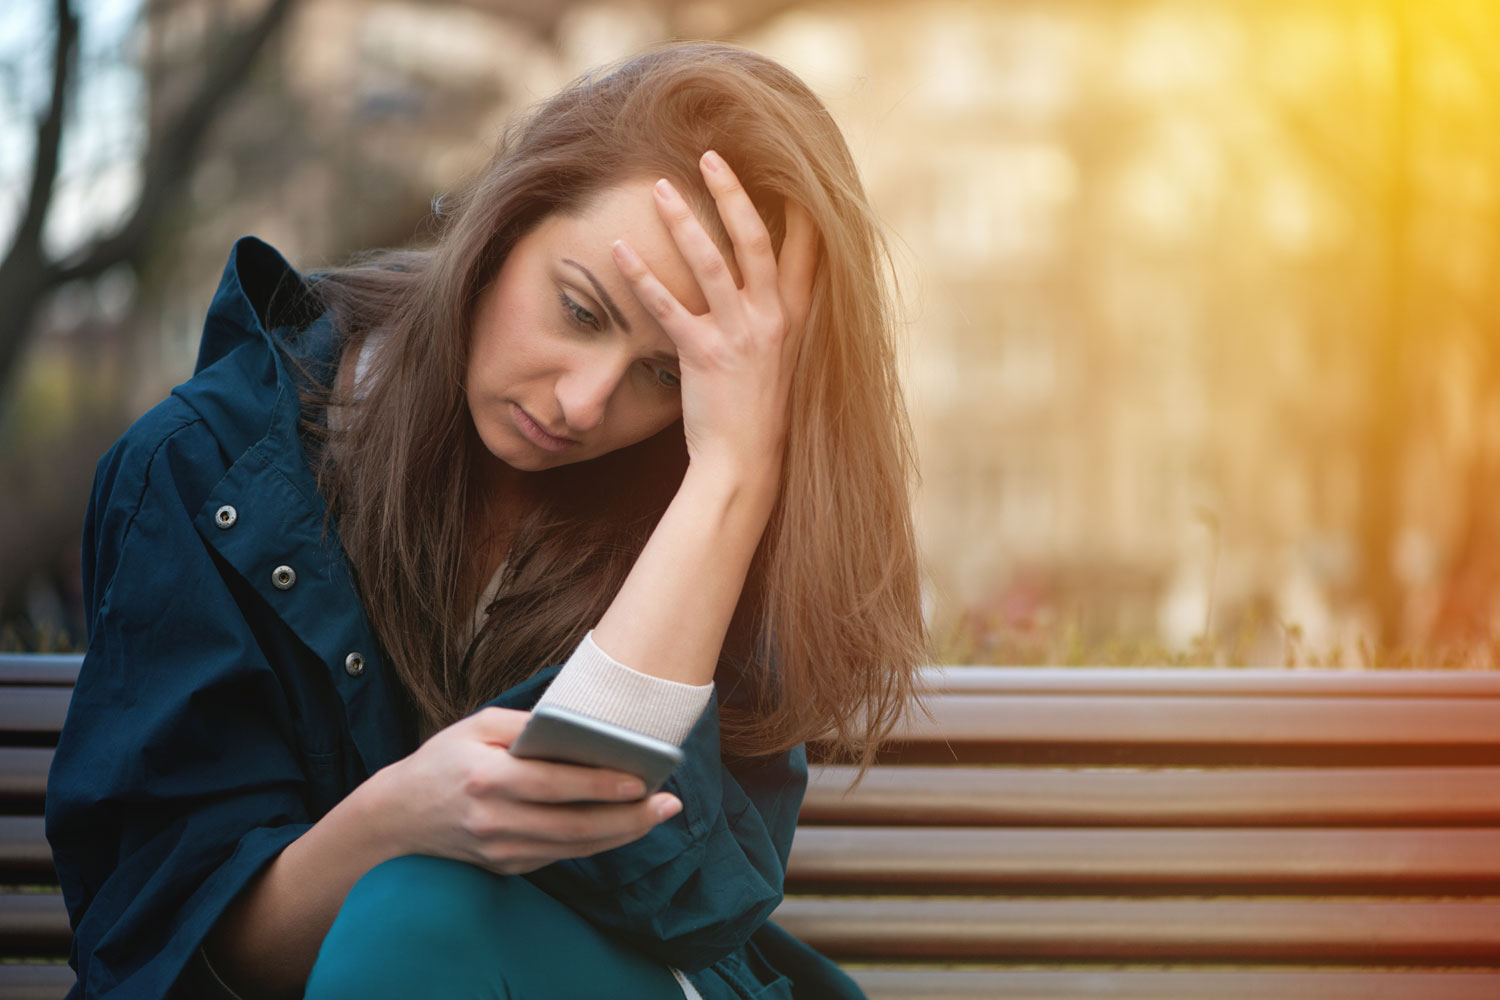 young woman on a bench looking at her cell phone